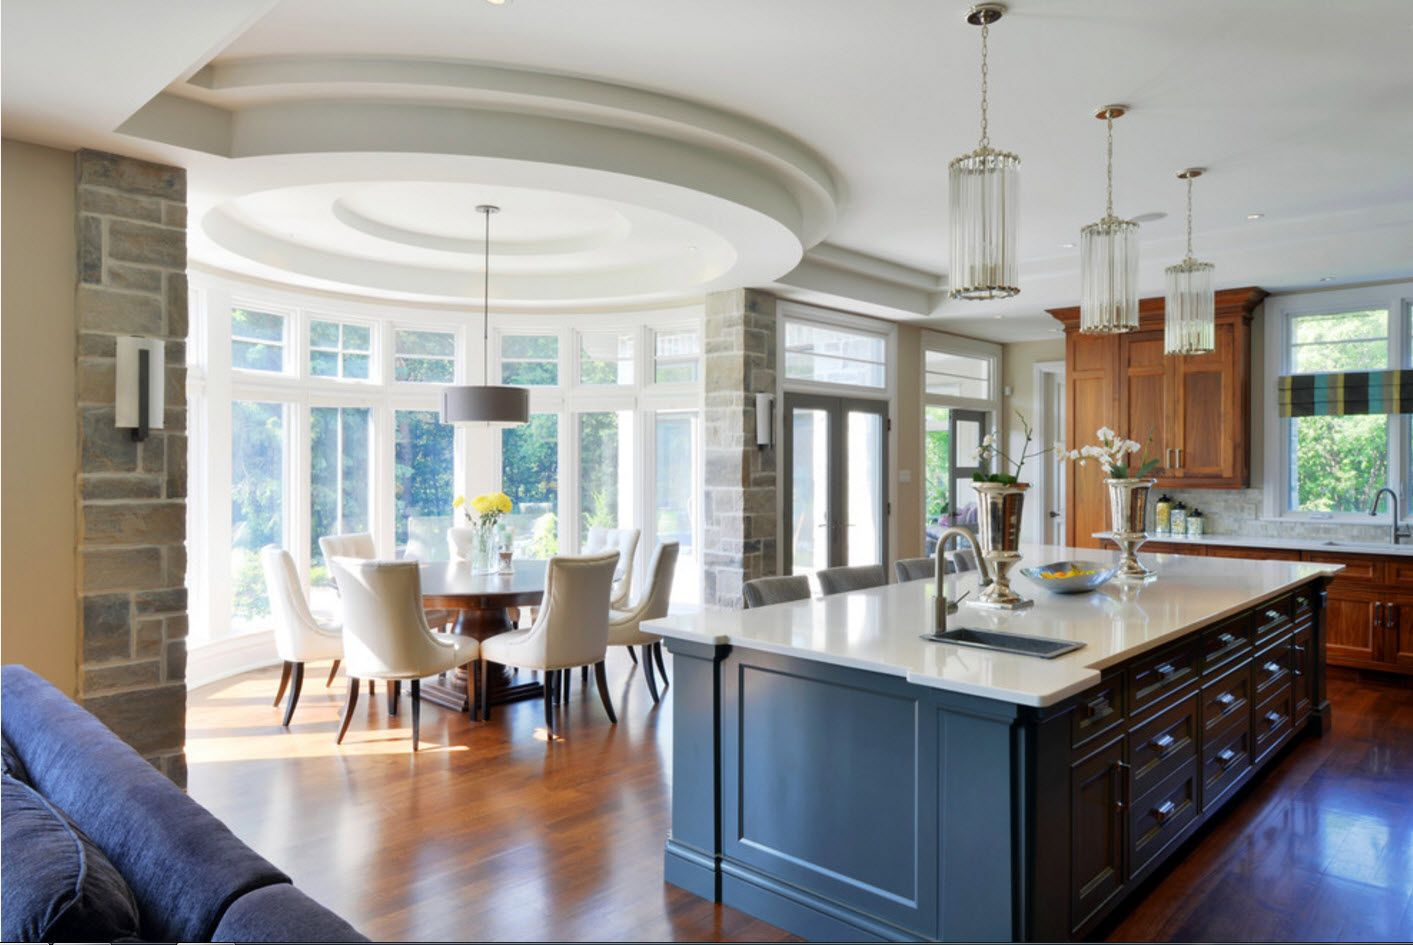 Actual idea of separating dining zone to the bay window at the classic set kitchen